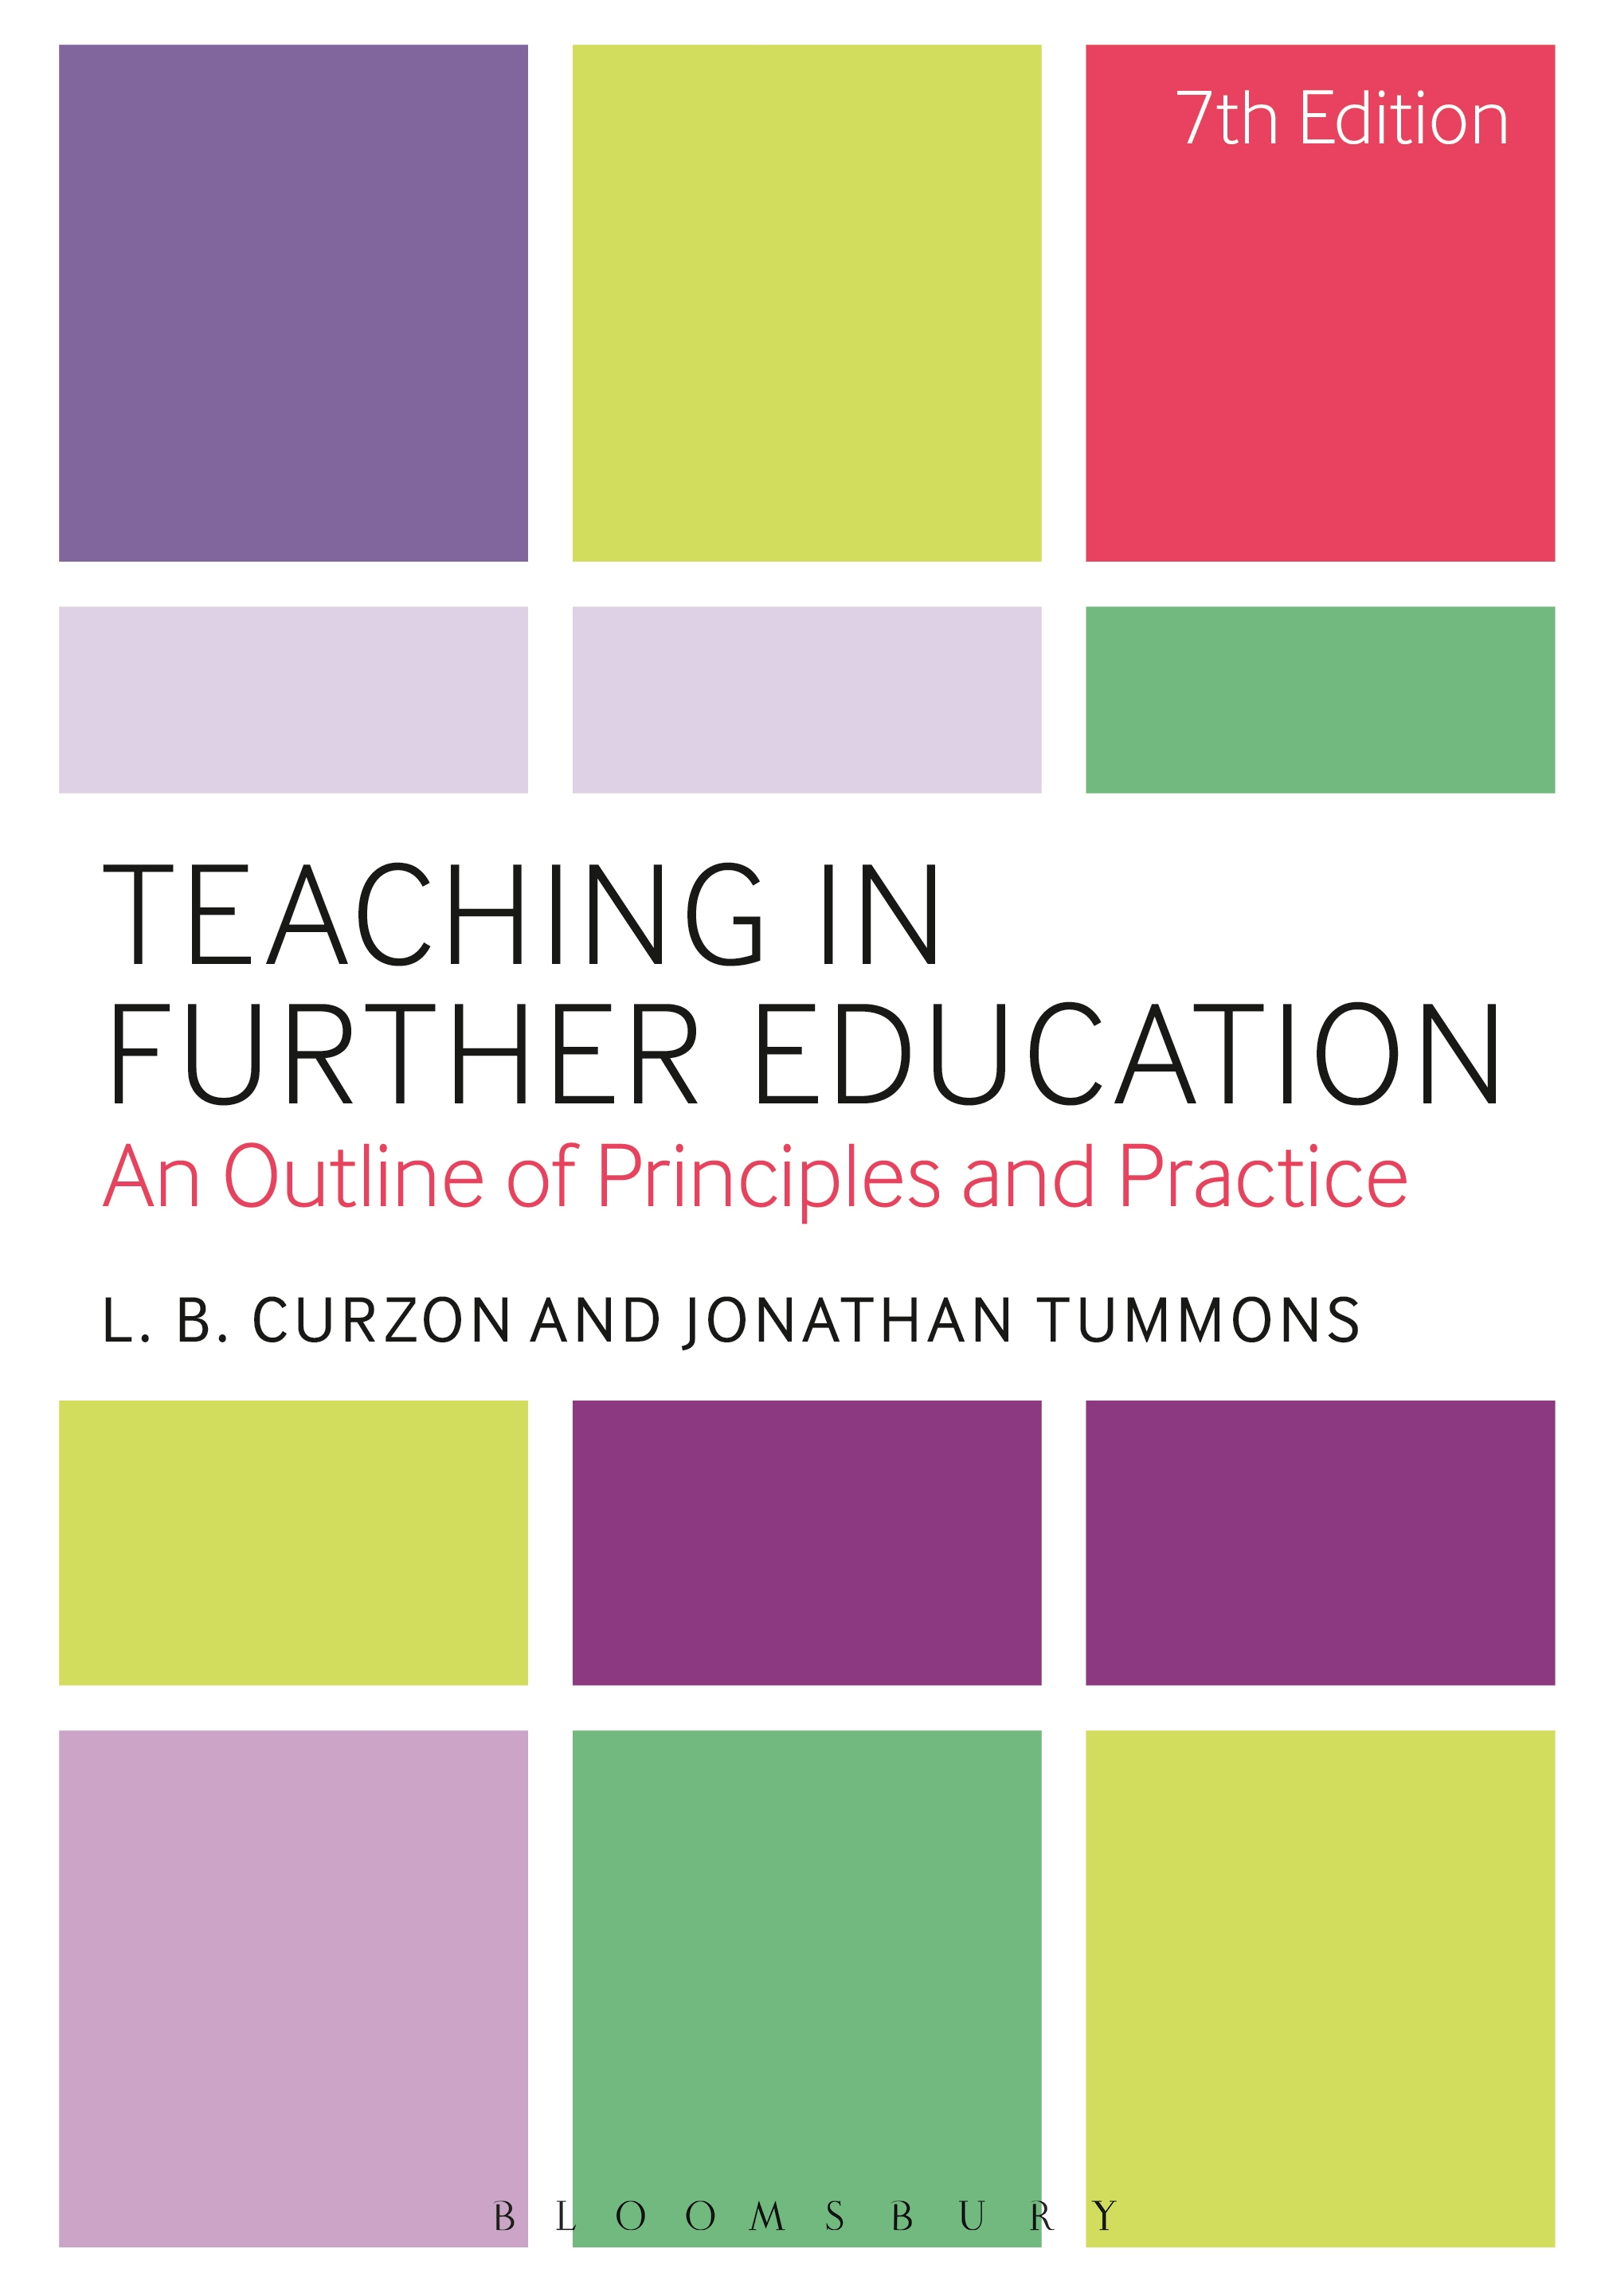 Teaching in Further Education An Outline of Principles and Practice